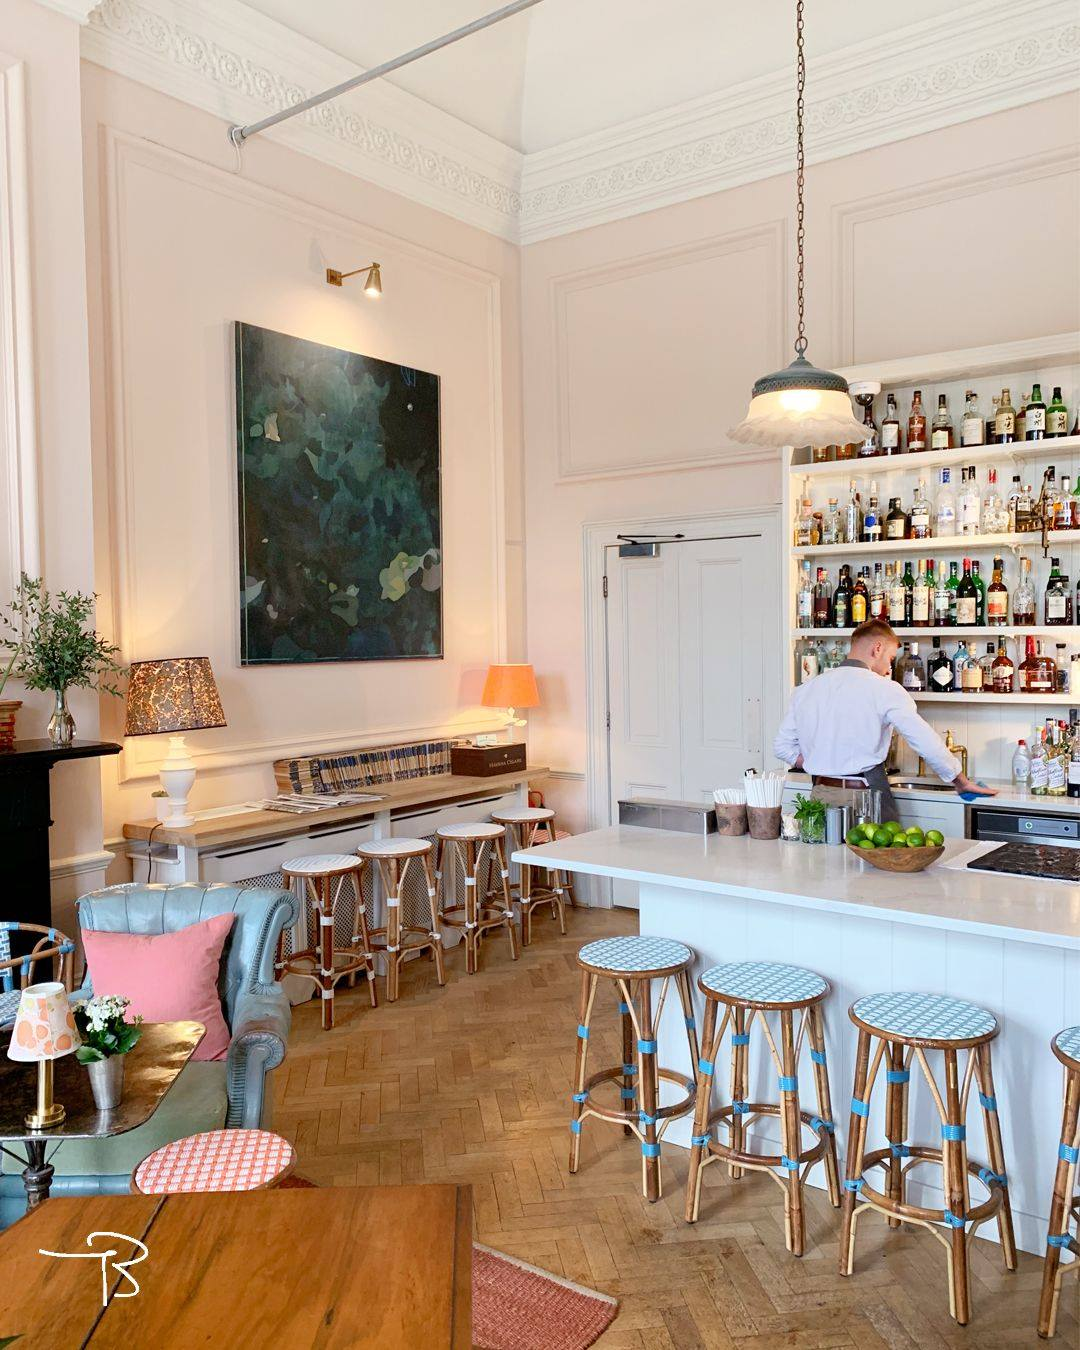 Best Boutique Hotels in London for a Weekend Getaway | Bingham Riverhouse